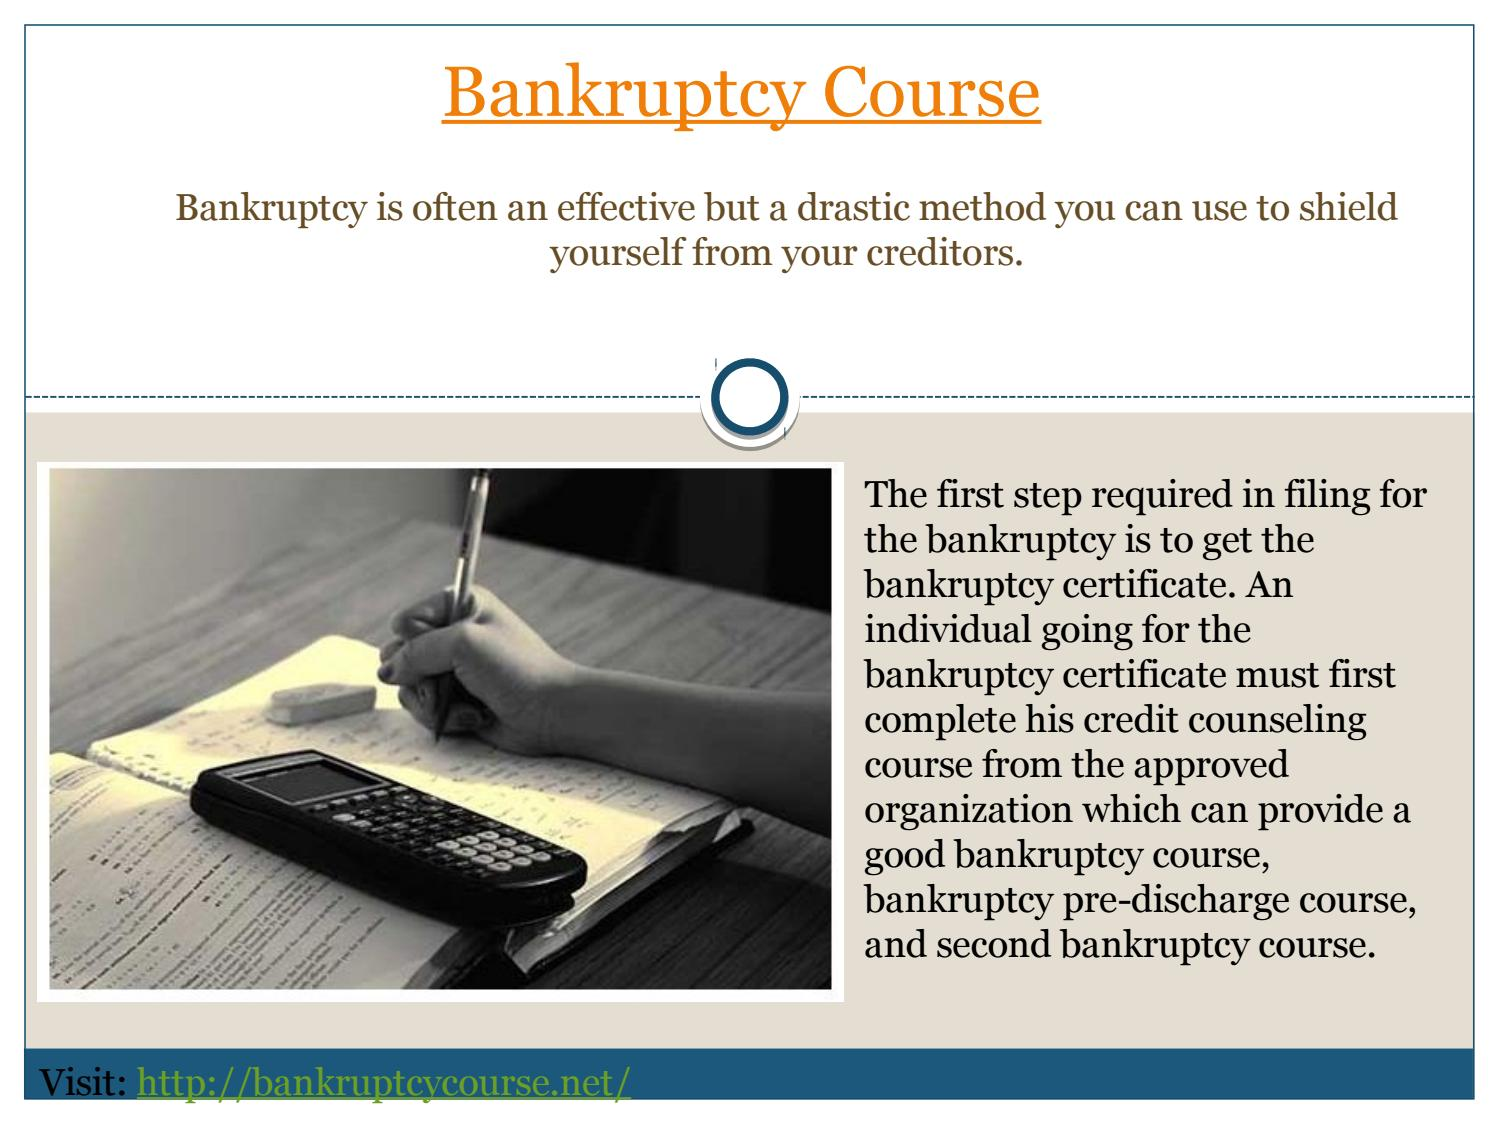 Bankruptcy Course By Bankruptcycourse Issuu